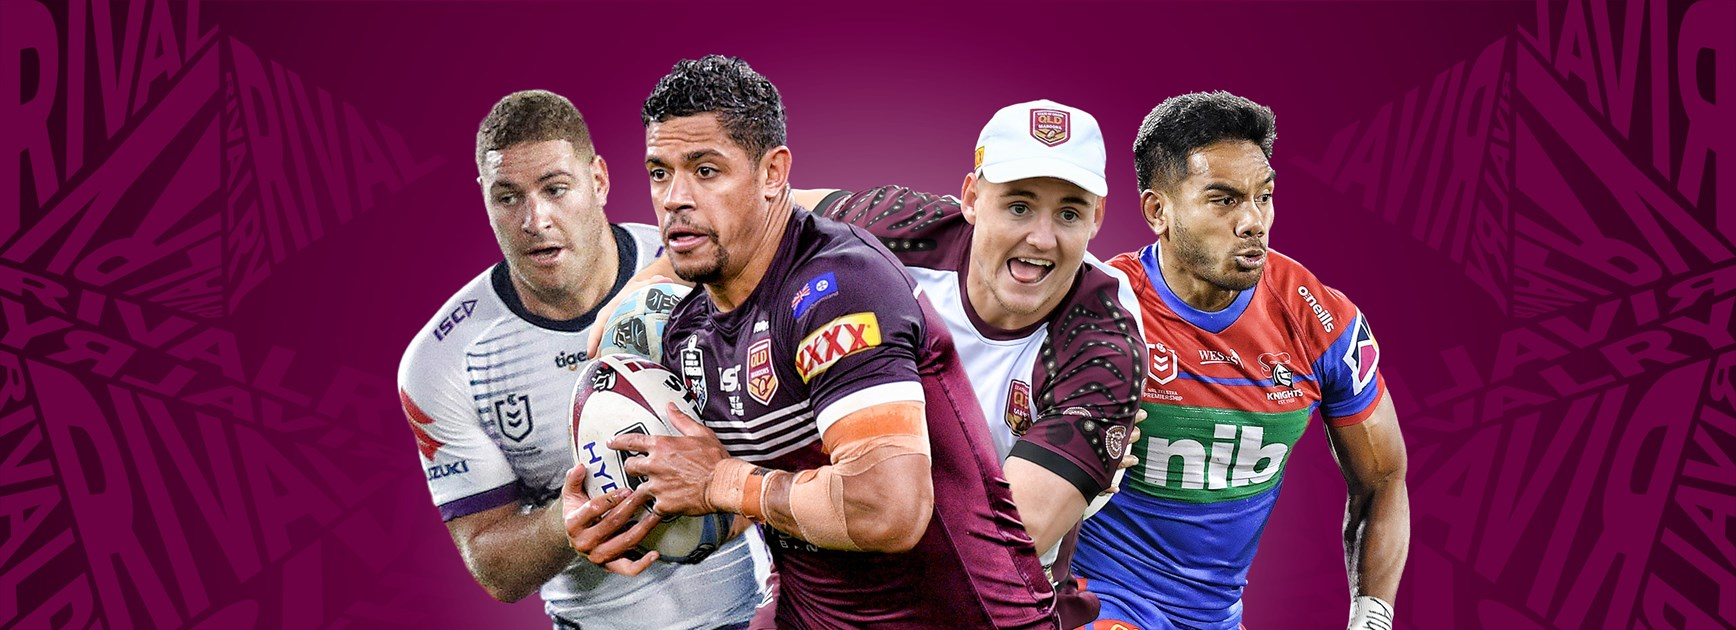 Ranking the Maroons backs candidates for 2020 Origin